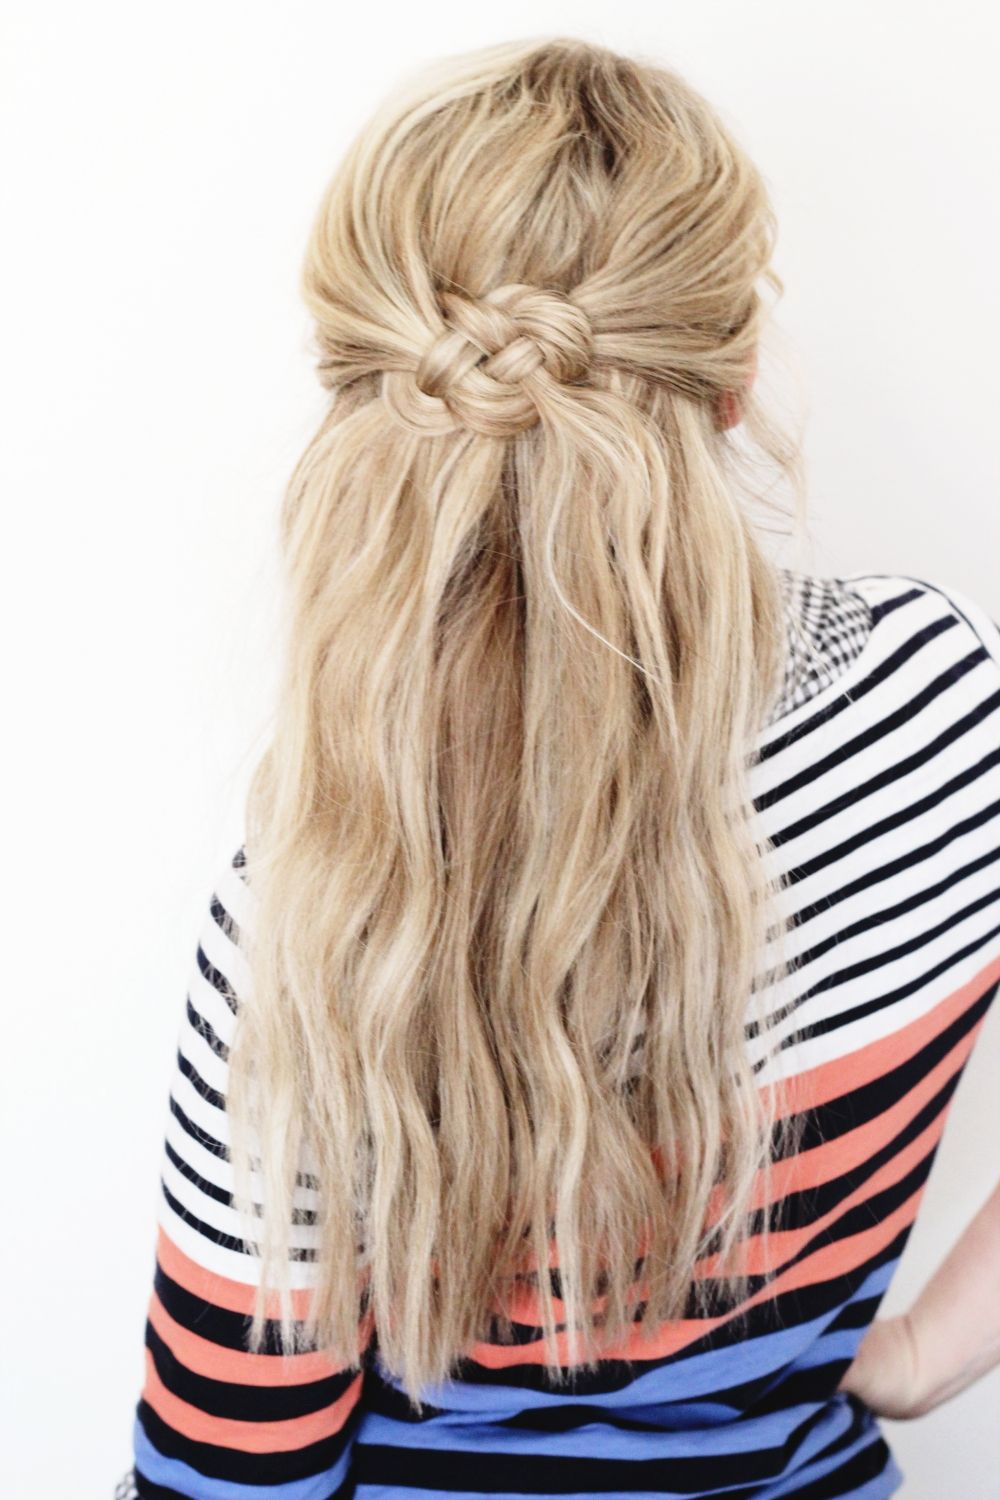 Celtic knot hairstyles b e a u t y pinterest knot hairstyles